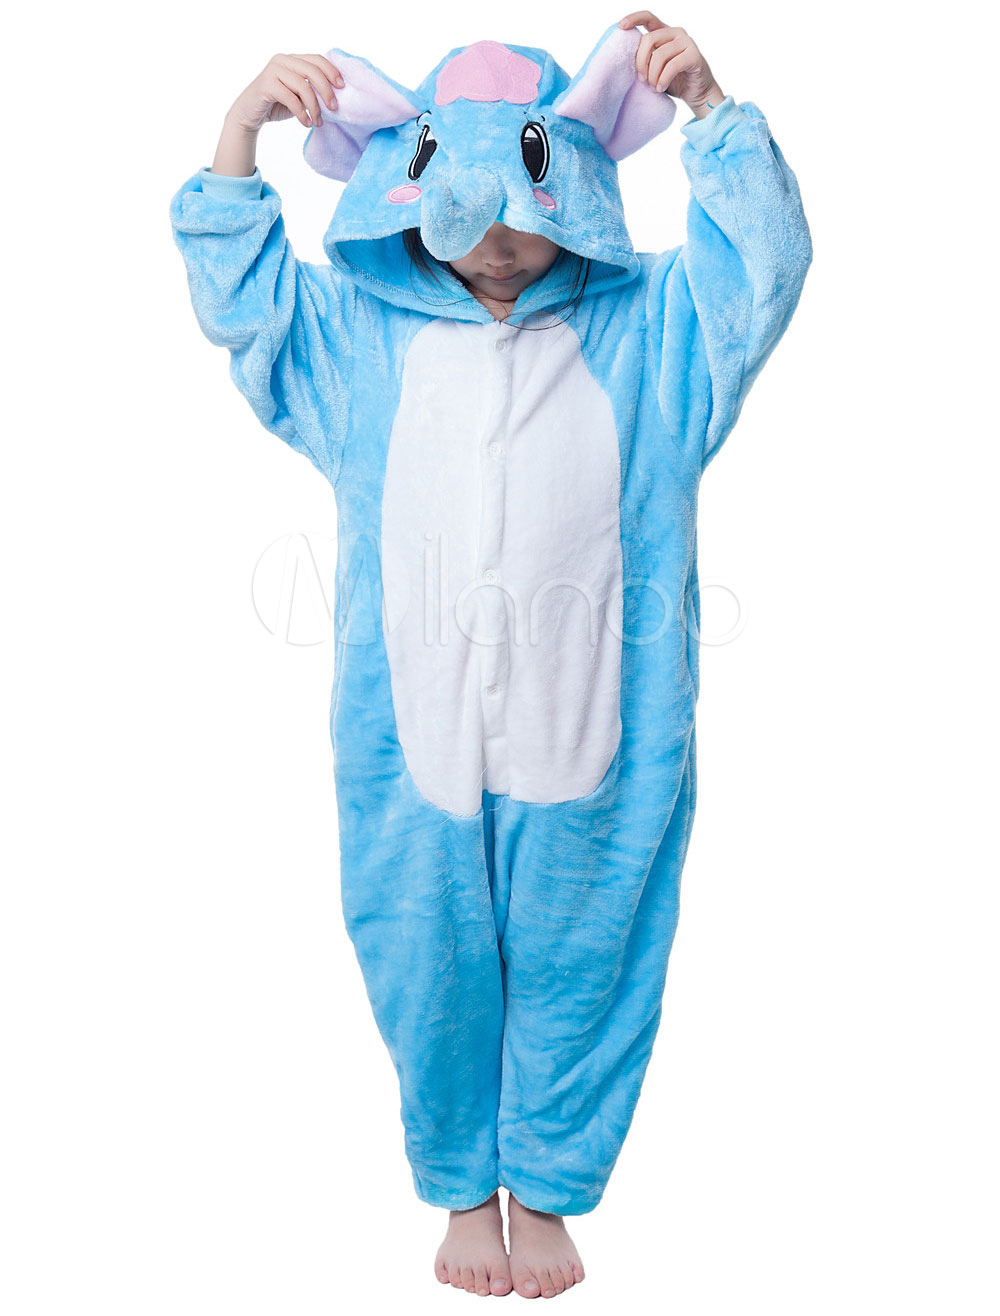 Buy Kigurumi Pajama Elephant Onesie For Kids Blue Synthetic Jumpsuit Mascot Costume Halloween for $18.26 in Milanoo store